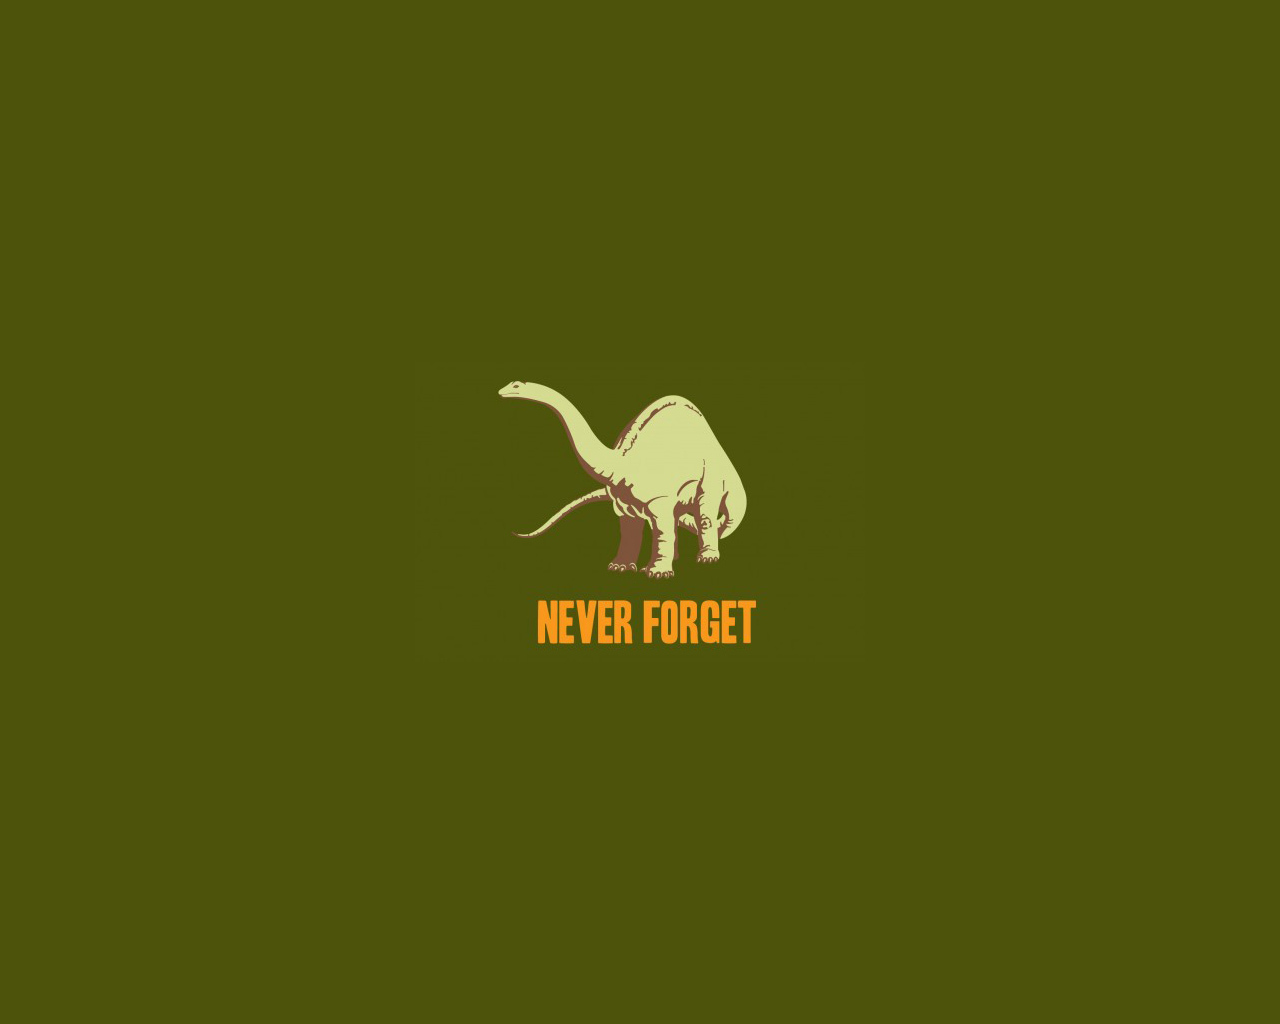 Dinosaurs never forget green